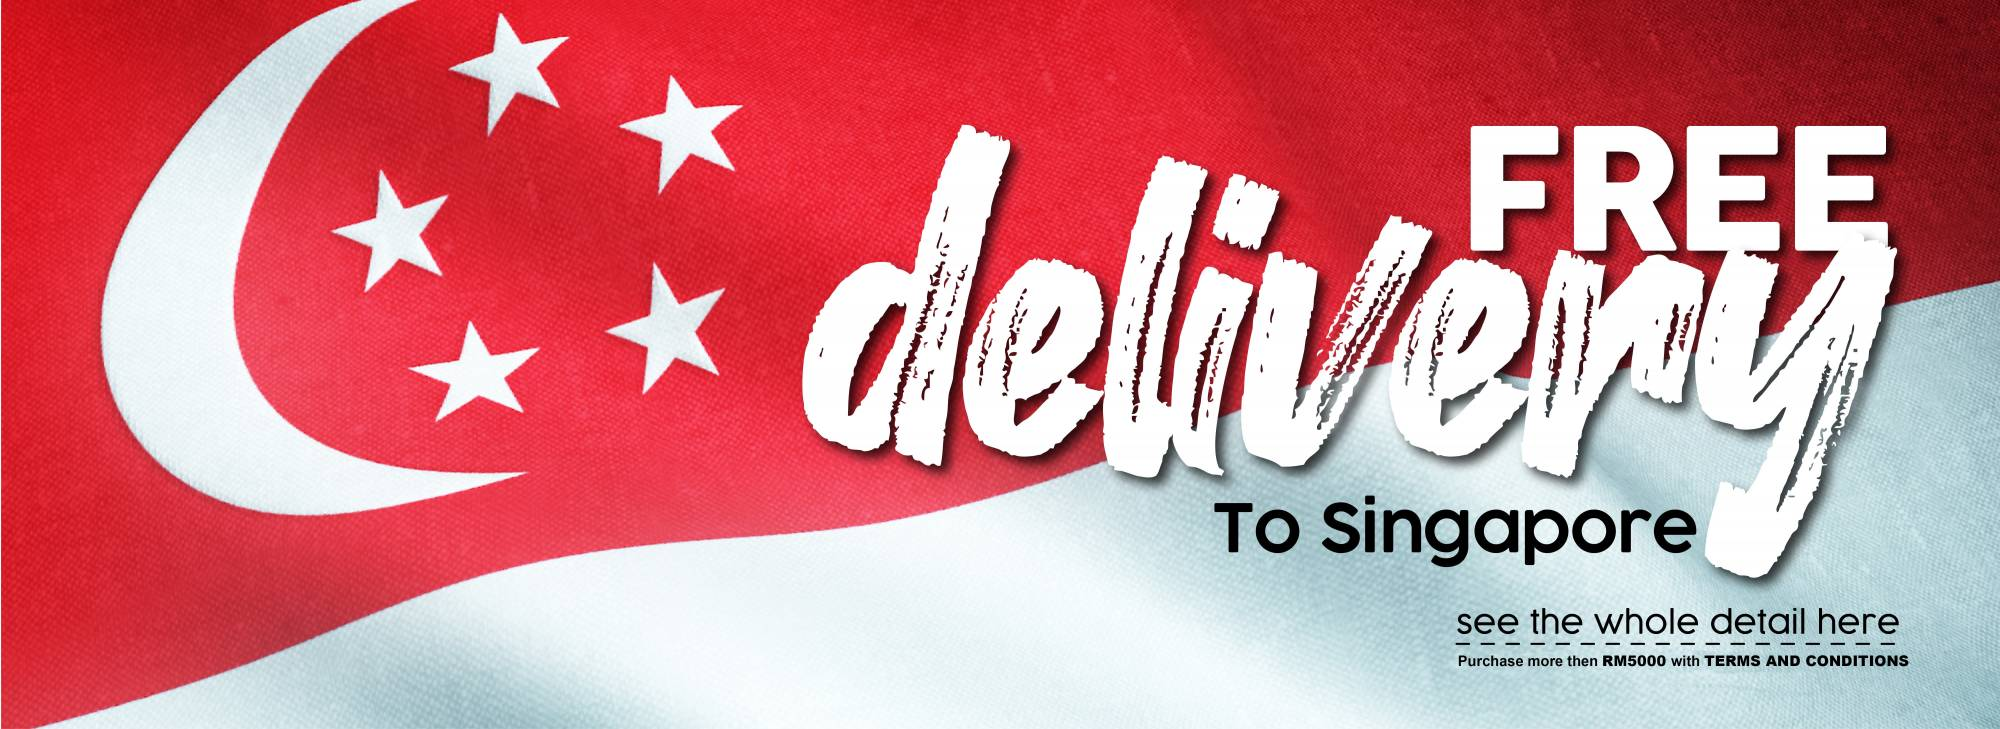 FREE DELIVERY TO SINGAPORE